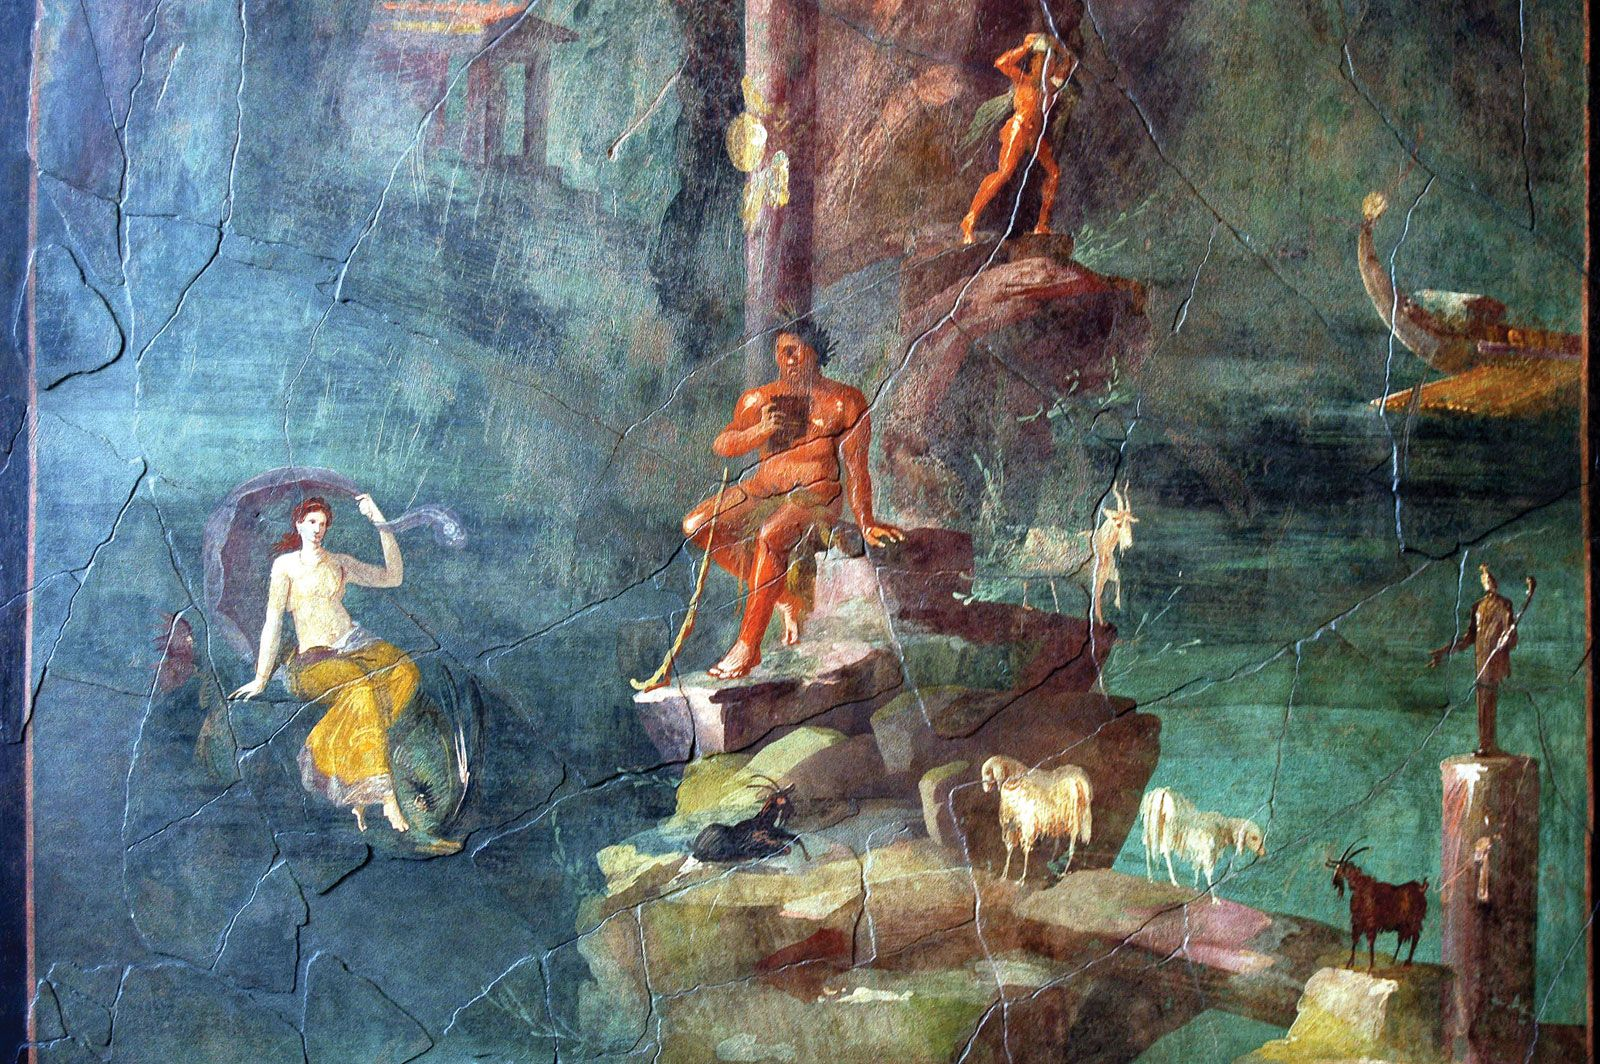 Polyphemus and Galatea in a landscape, Roman fresco from the imperial villa of Agrippa Postumus at Boscotrecase, Italy, last decade of the 1st century bce; in the Metropolitan Museum of Art, New York City.